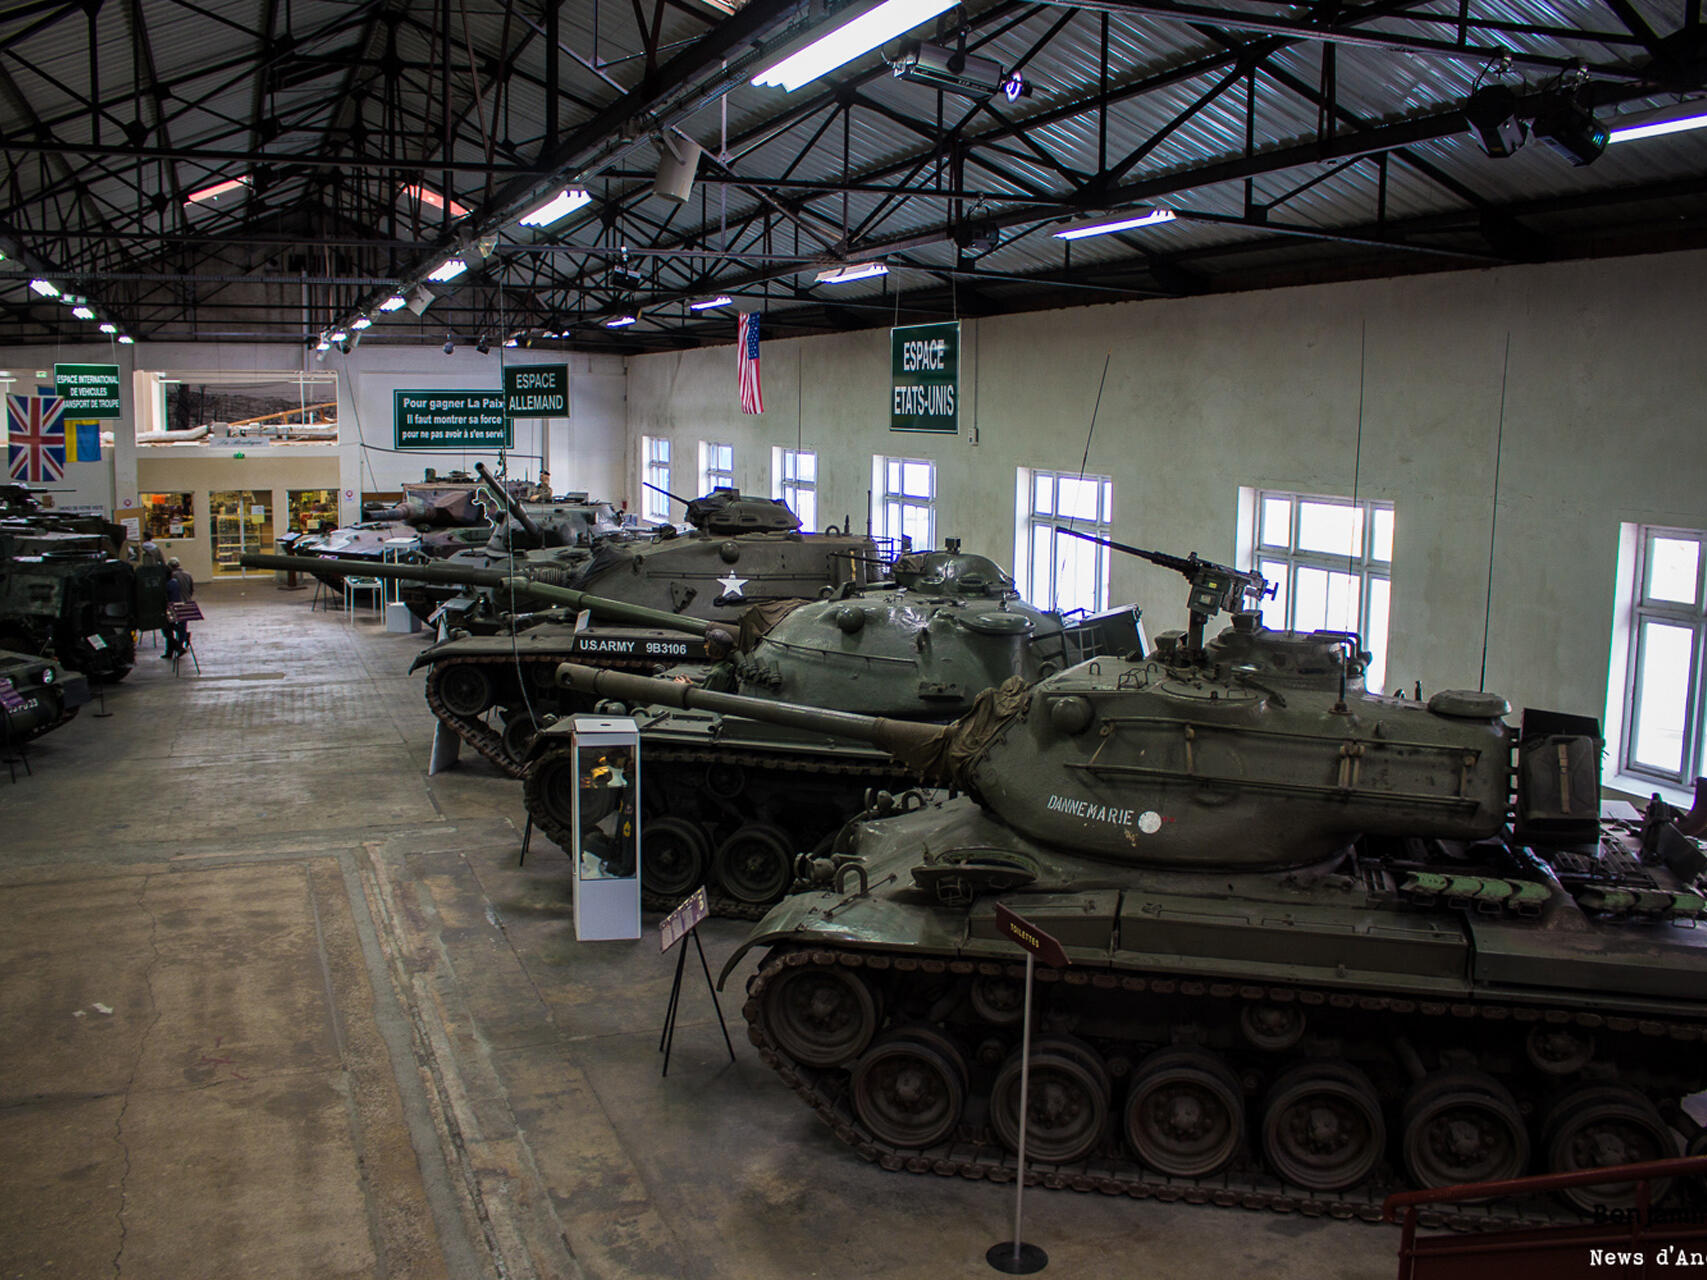 Tank Museum- Musee des Blindes